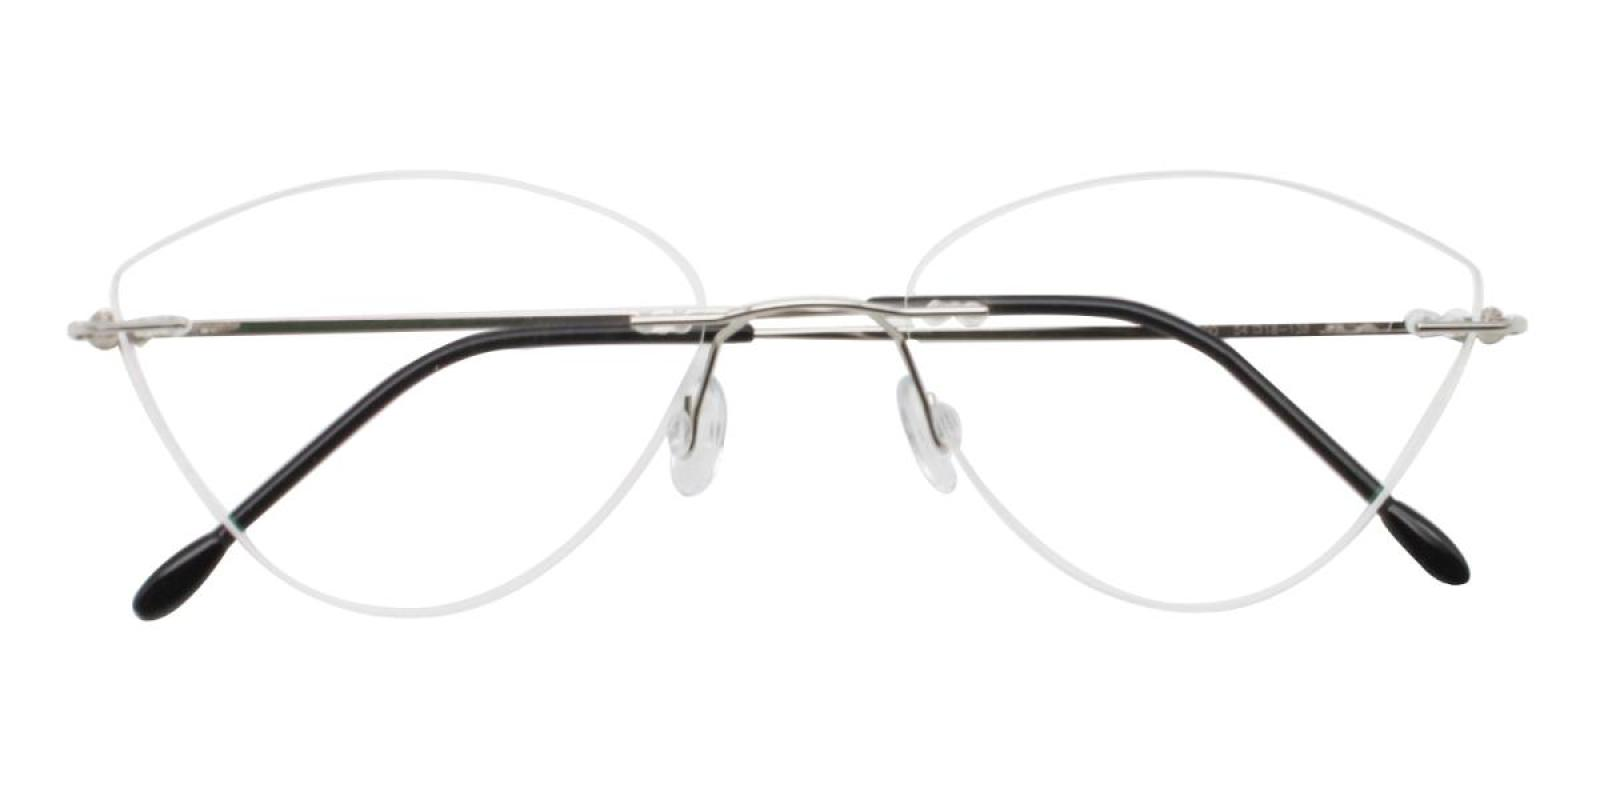 Huram-Silver-Cat / Varieties-Metal-Eyeglasses-detail